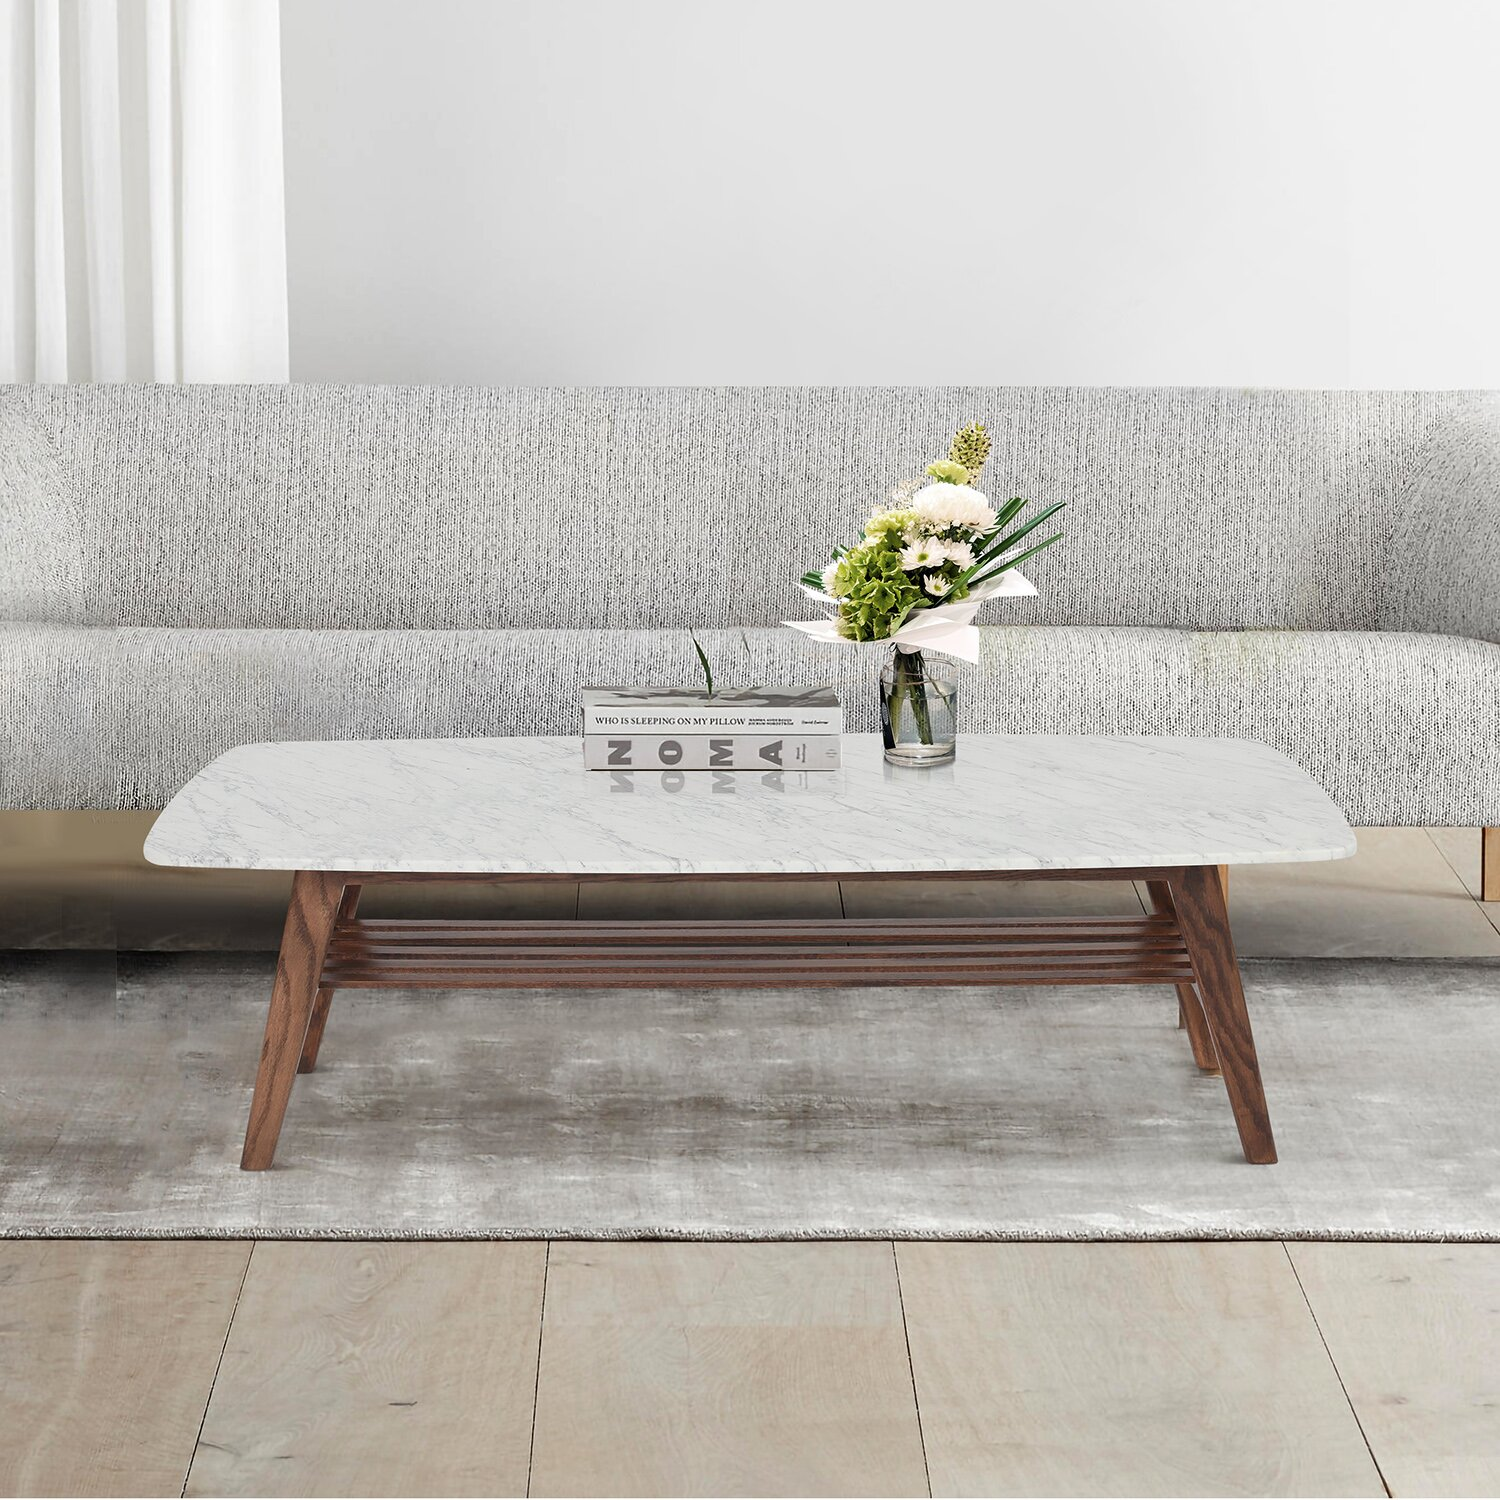 white-top-coffee-table-genuine-carrara-marble-open-lower-shelf-high-end-mid-century-modern-furniture-for-sale-online